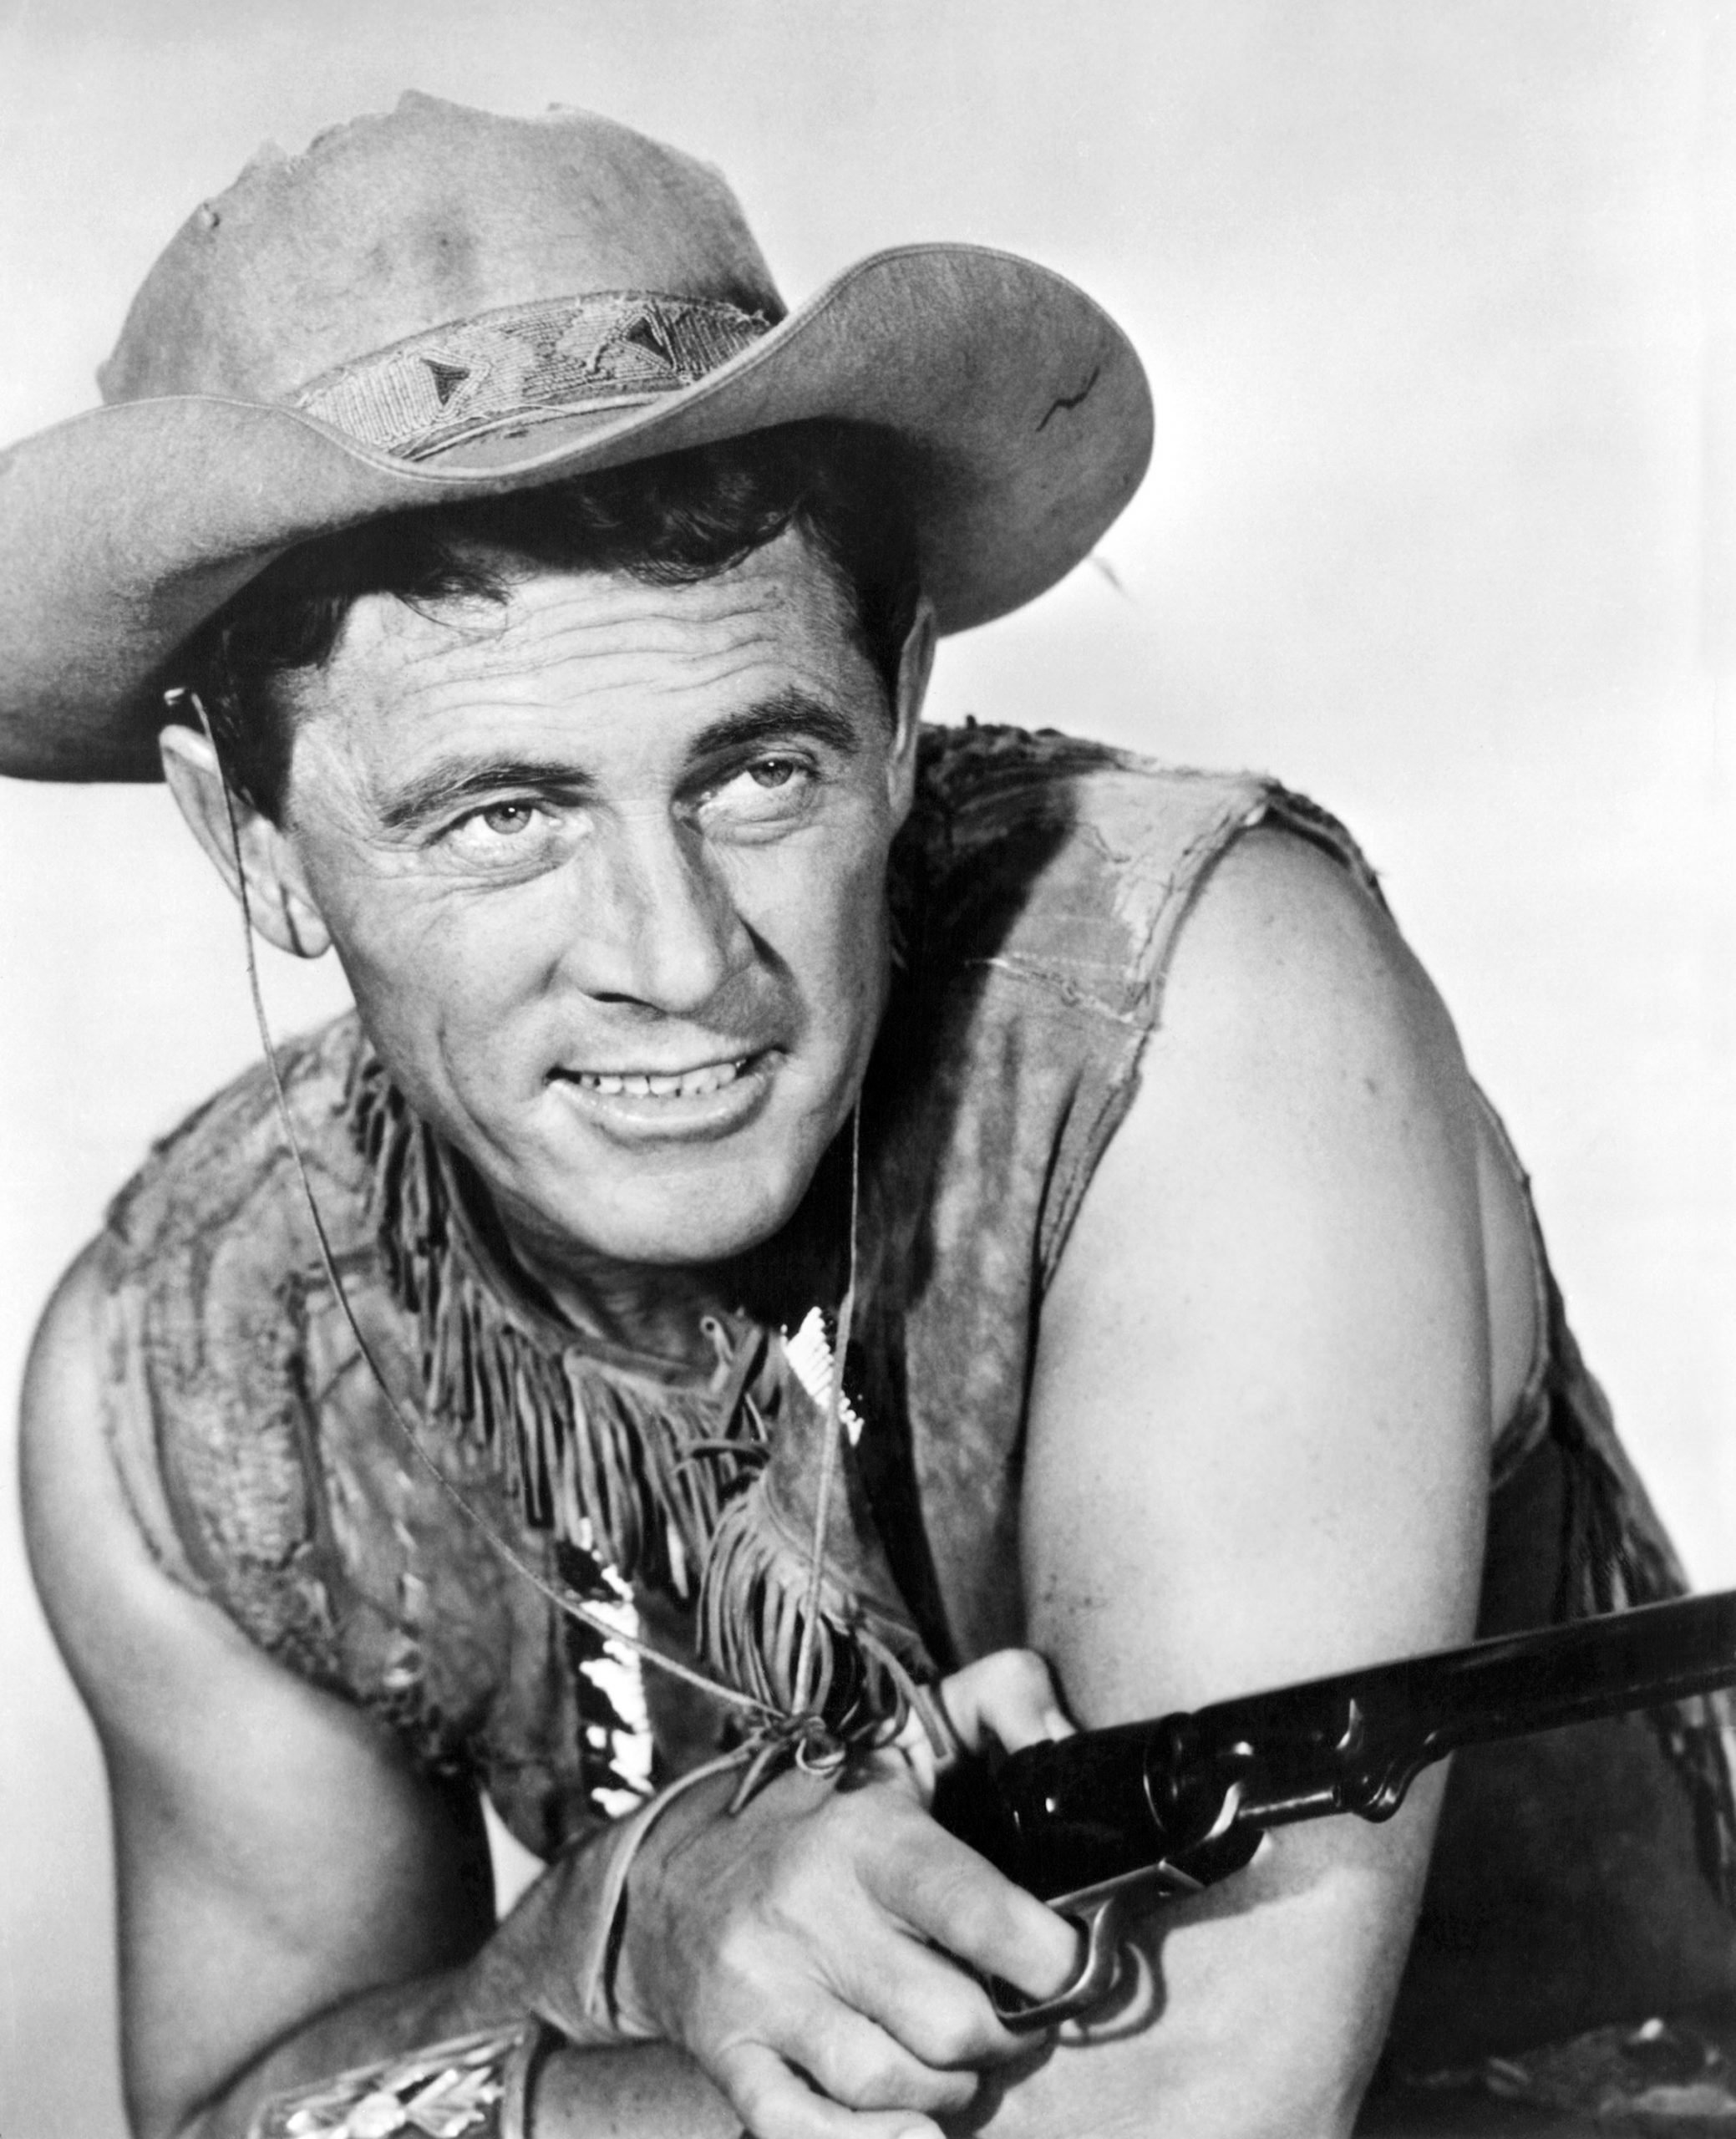 Ken Curtis was practically born to be a Western star